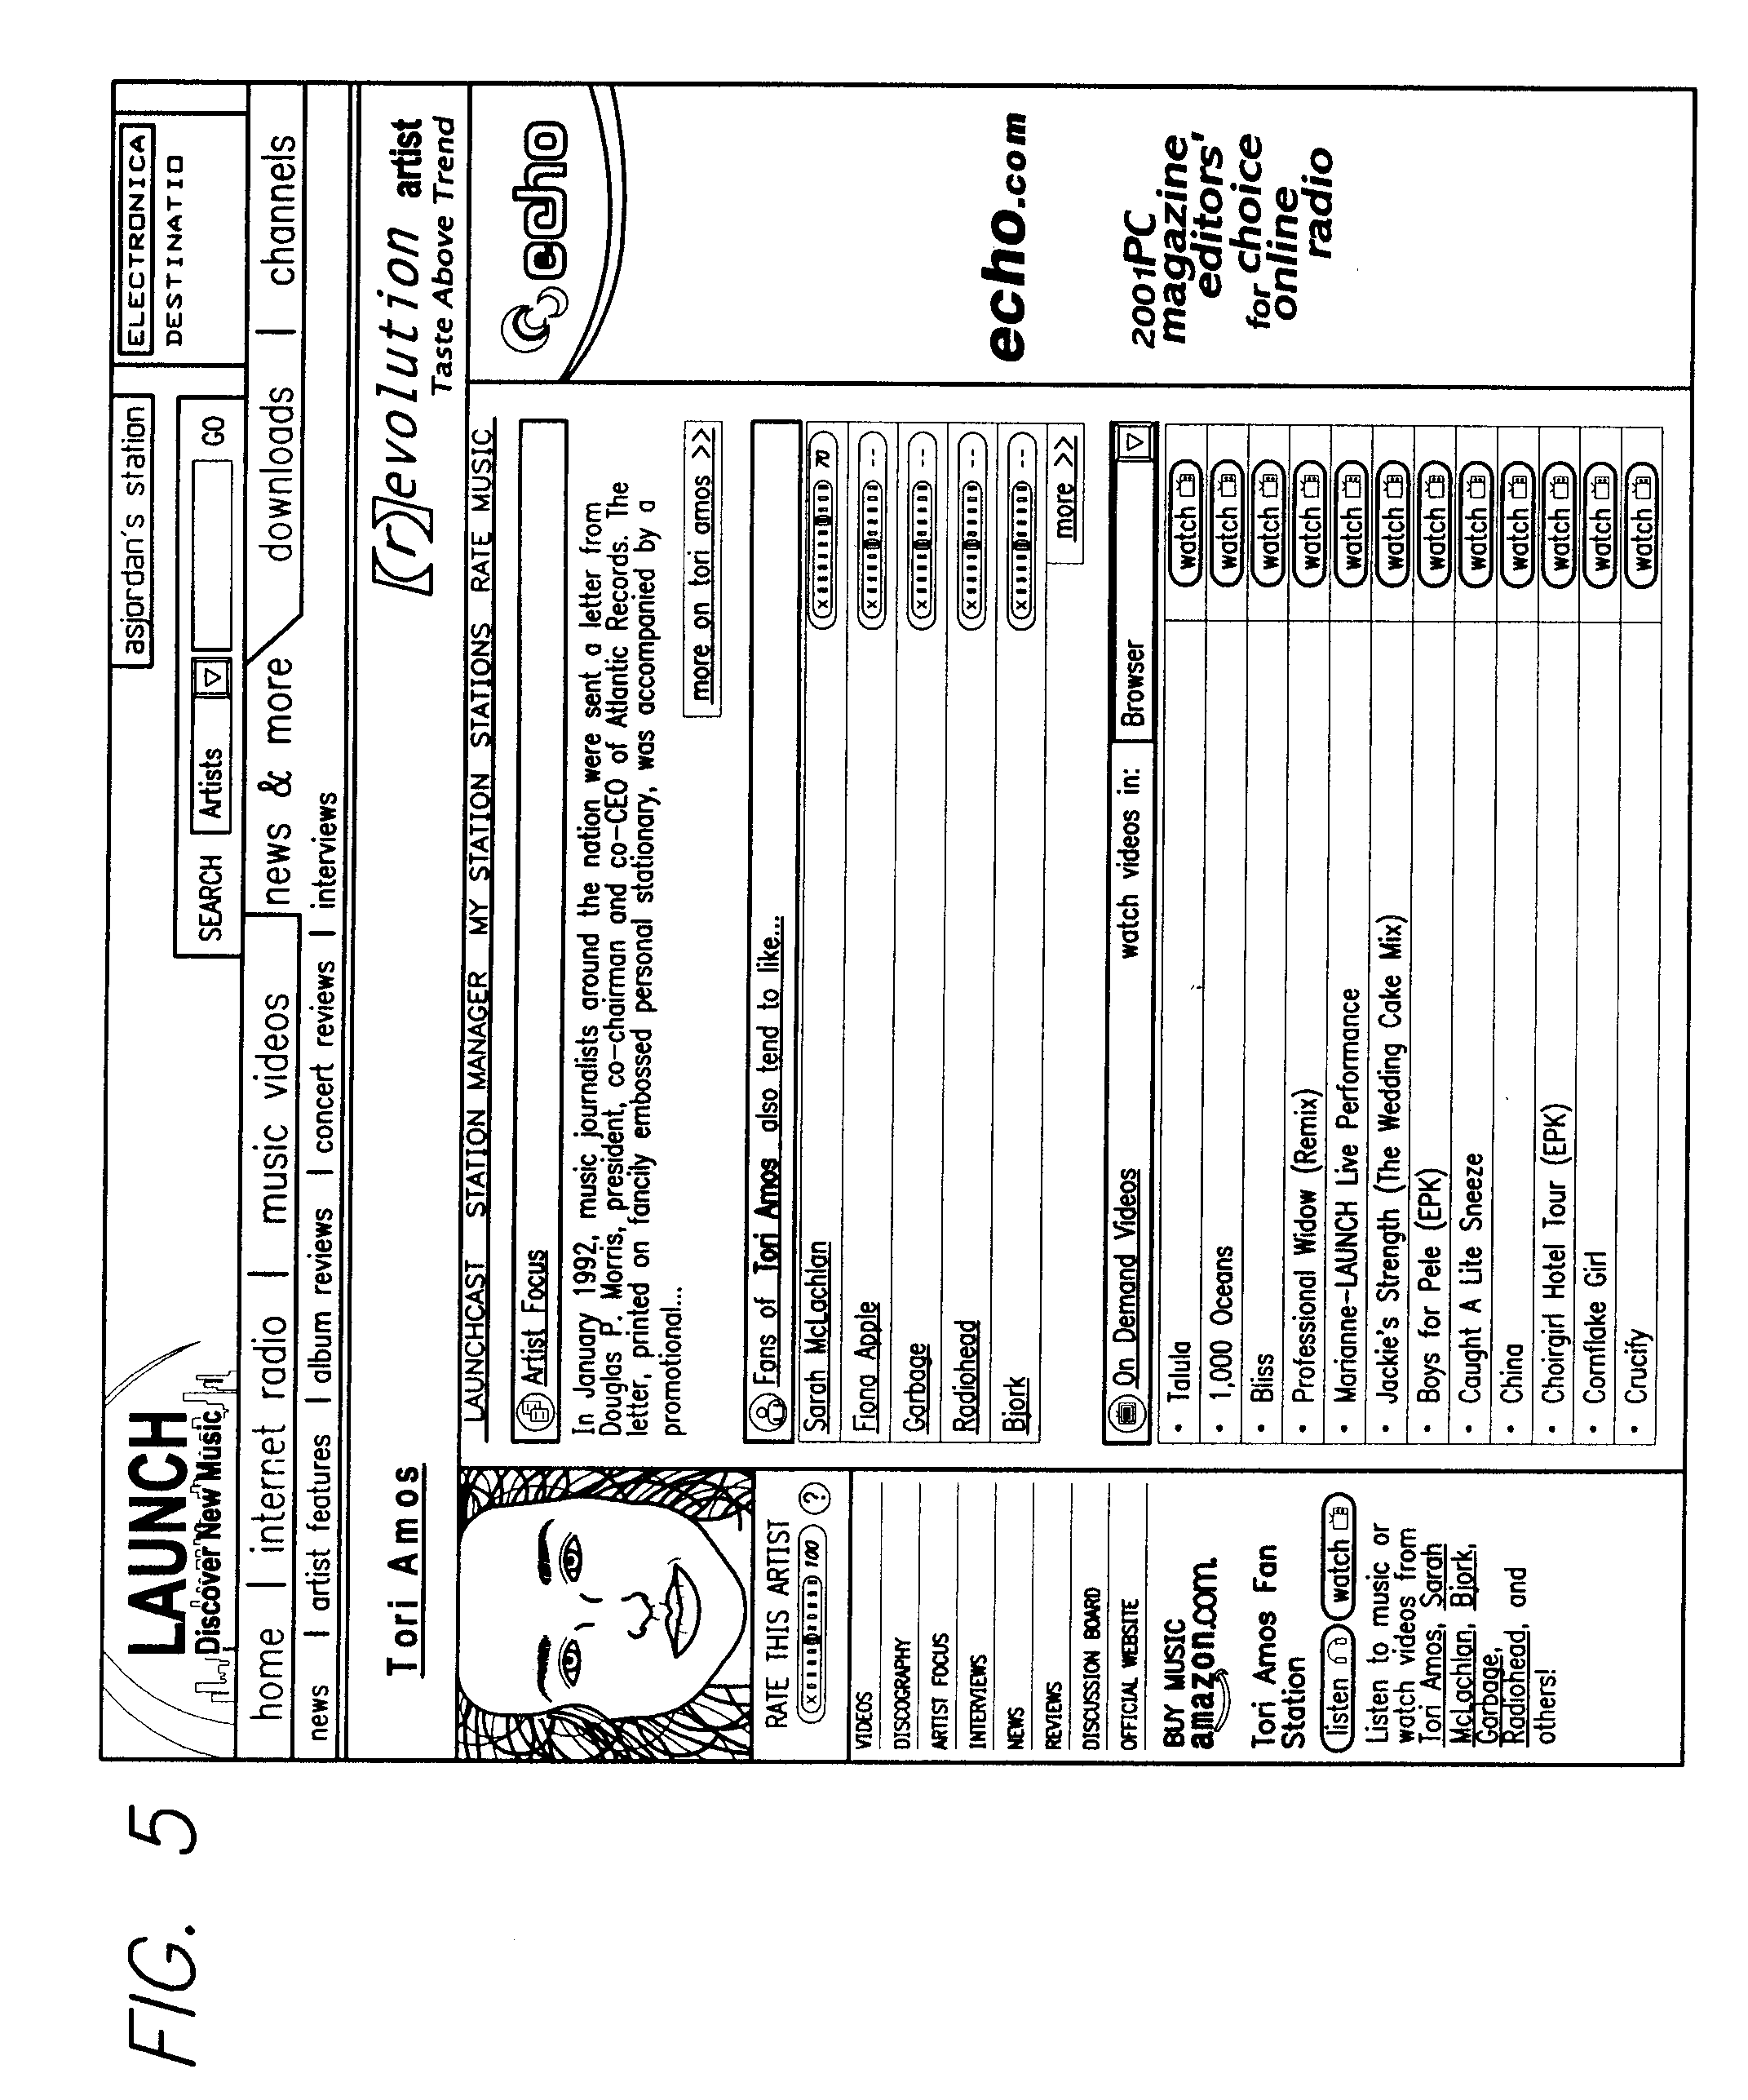 Patent US20090083435 - Online playback system with community